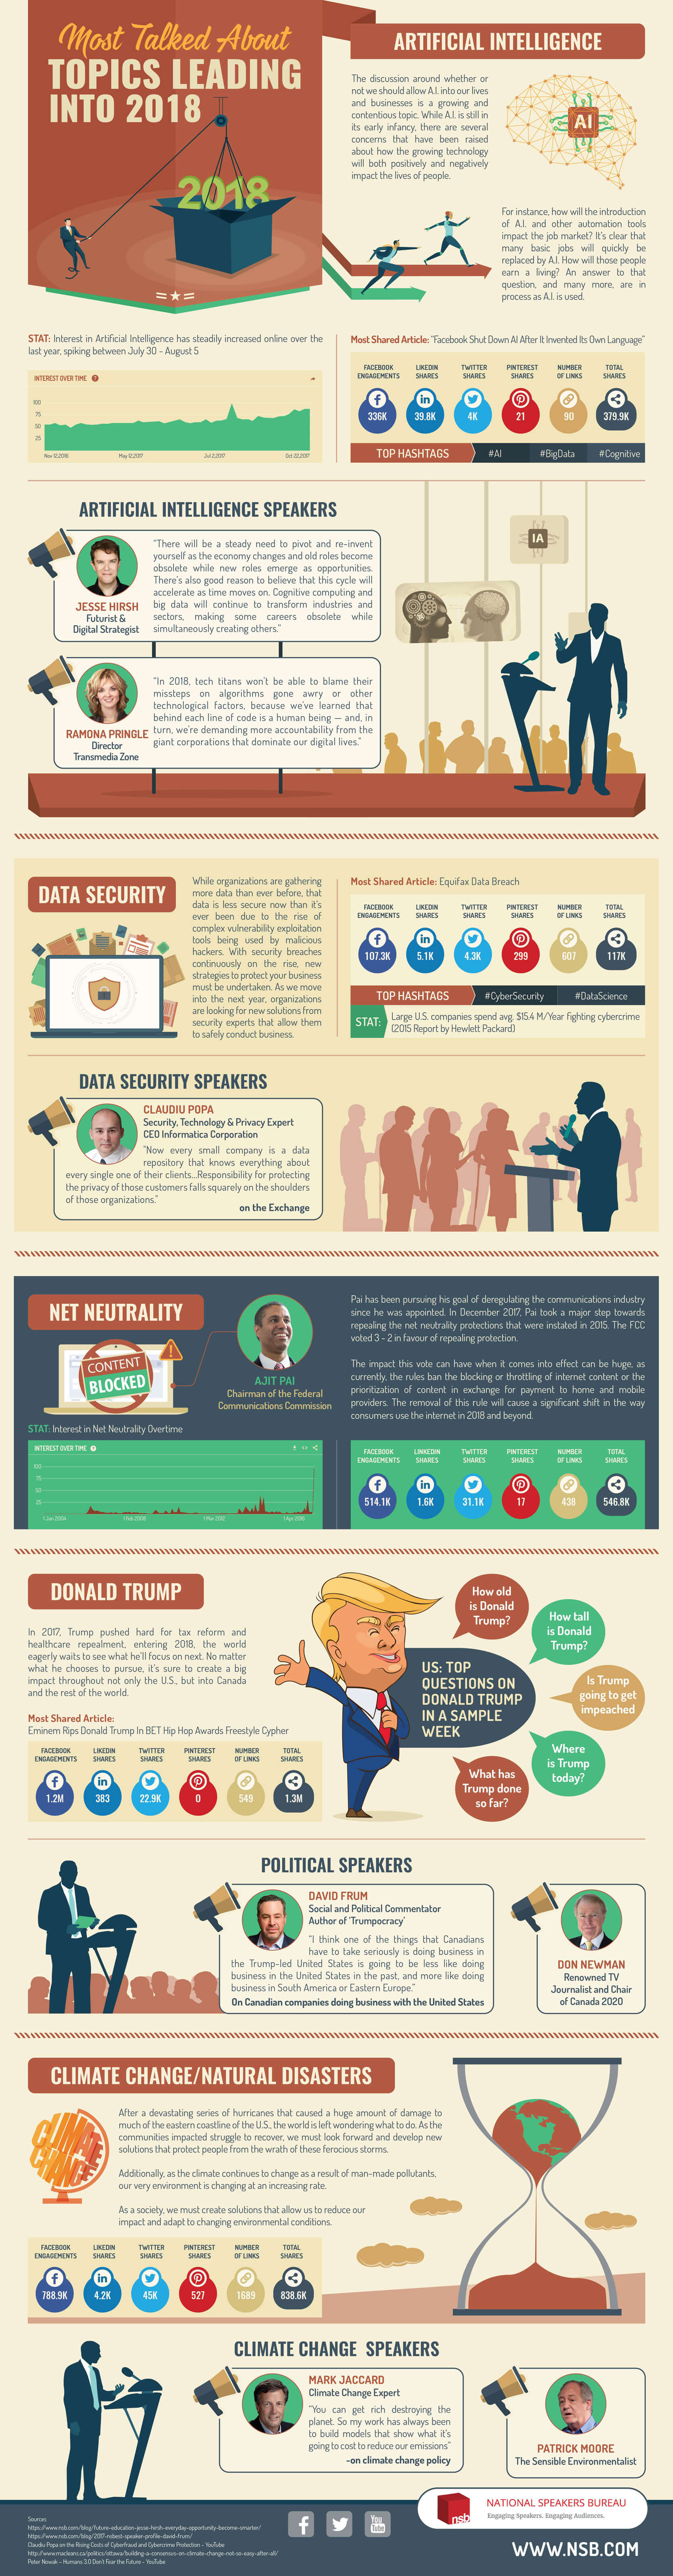 Most-talked-about-topics-leading-into-2018-infographic-plaza